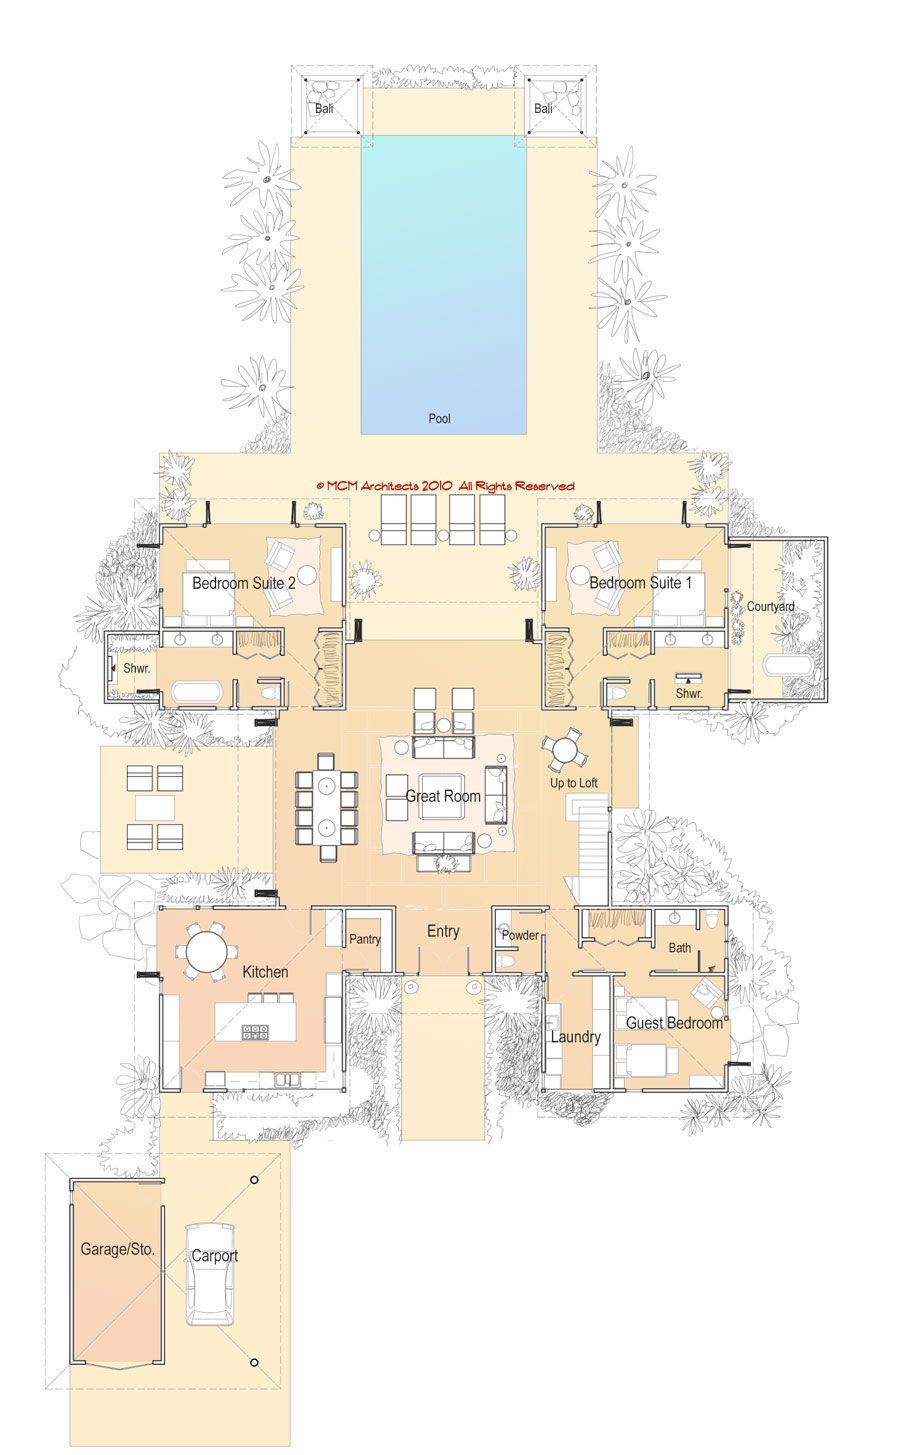 Island Style Homes by MCM Architects   Floor plans   Pinterest    Island Style Homes by MCM Architects   Floor plans   Pinterest   Islands  House plans and Architects